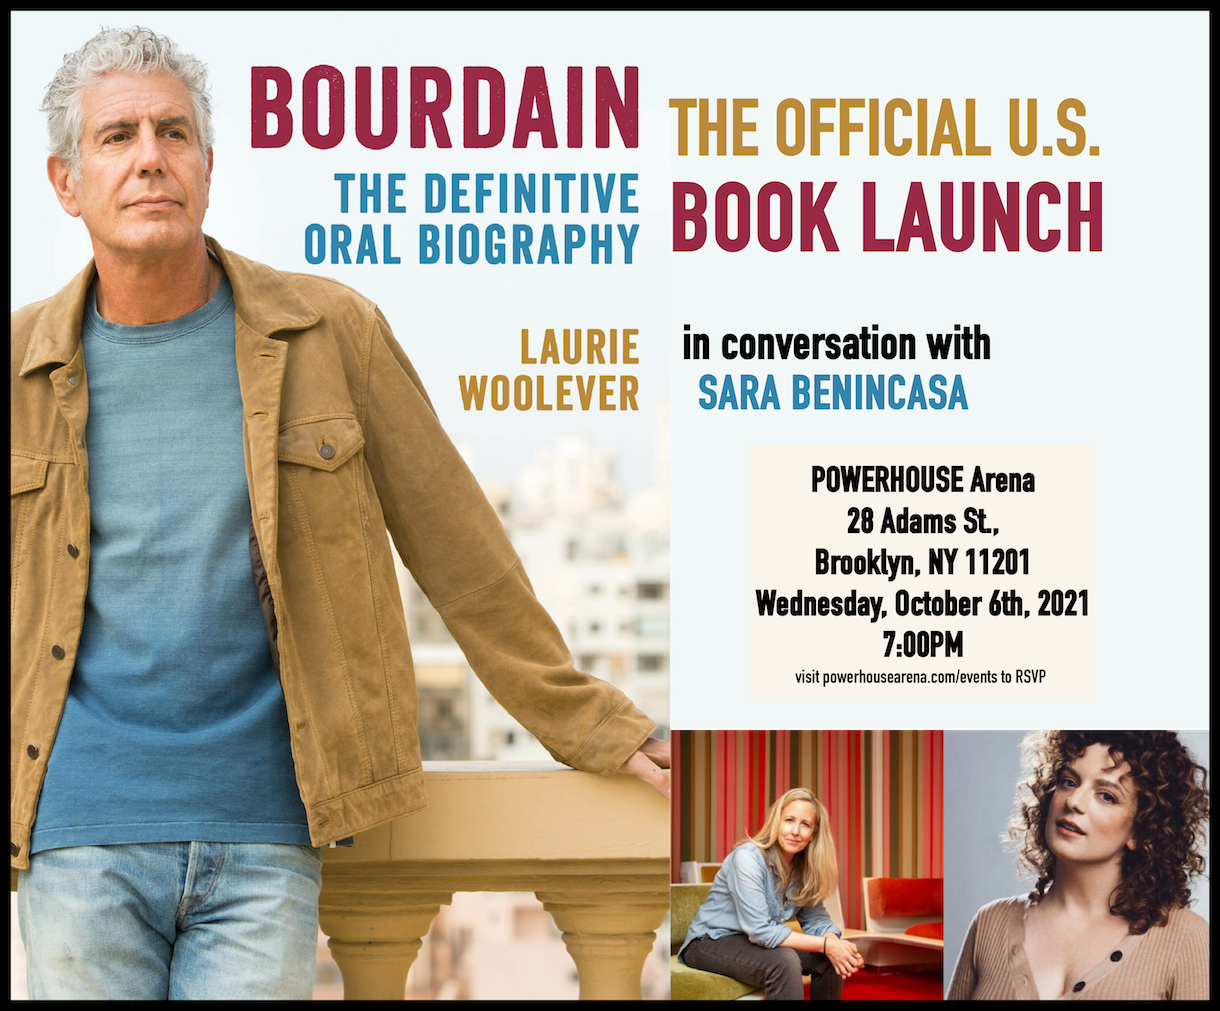 Official U.S. Book Launch: BOURDAIN: The Definitive Oral Biography by Laurie Woolever in conversation with Sara Benincasa